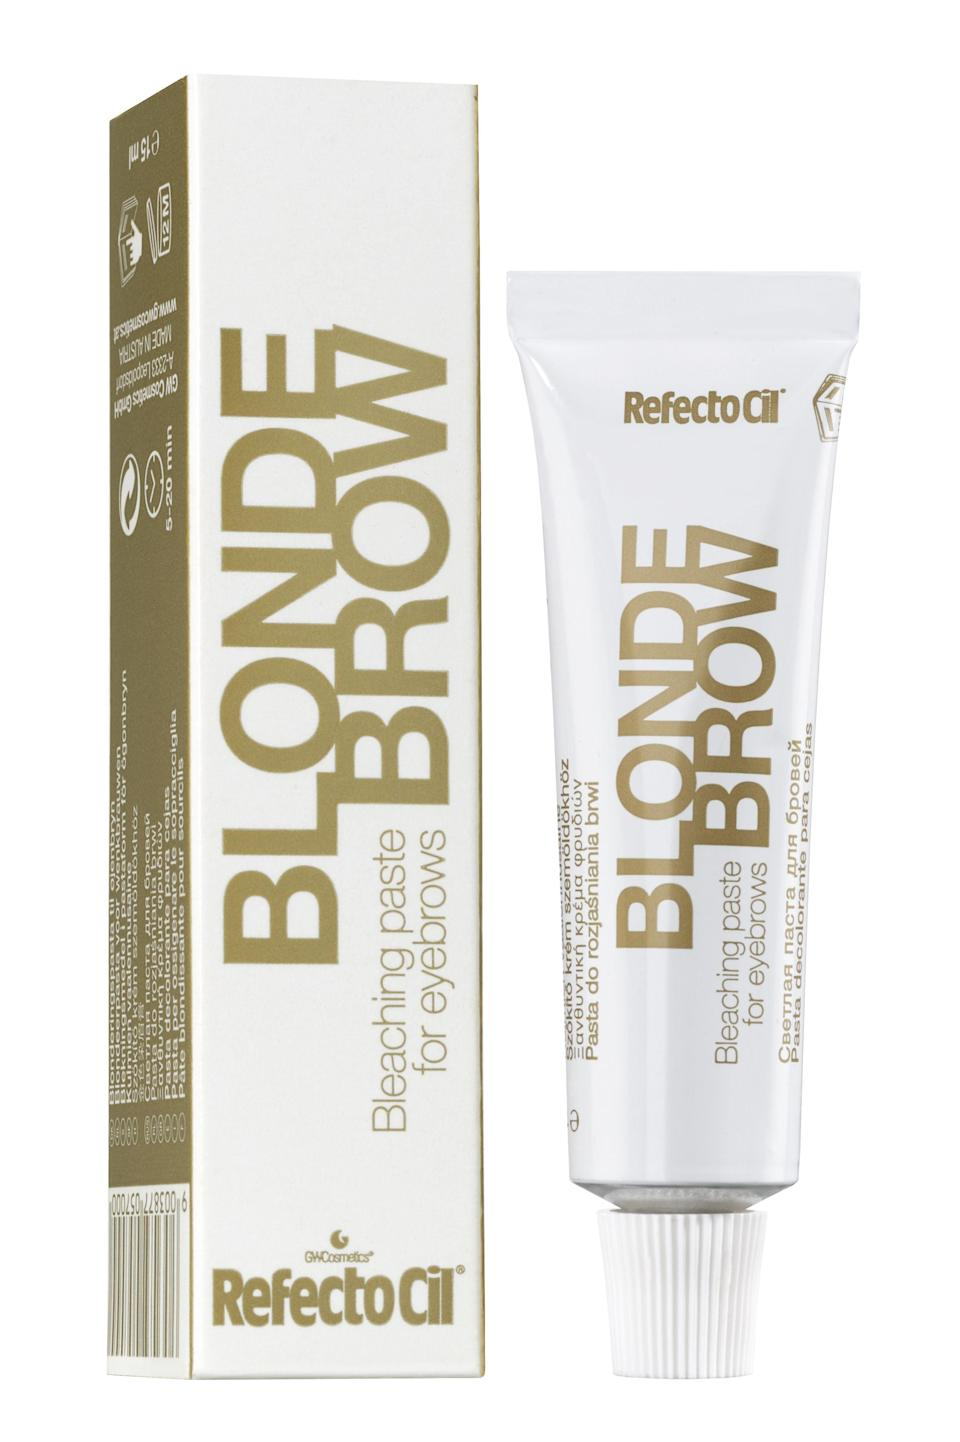 RefectoCil Blonde Brow Bleaching Paste, £9.99RefectoCil